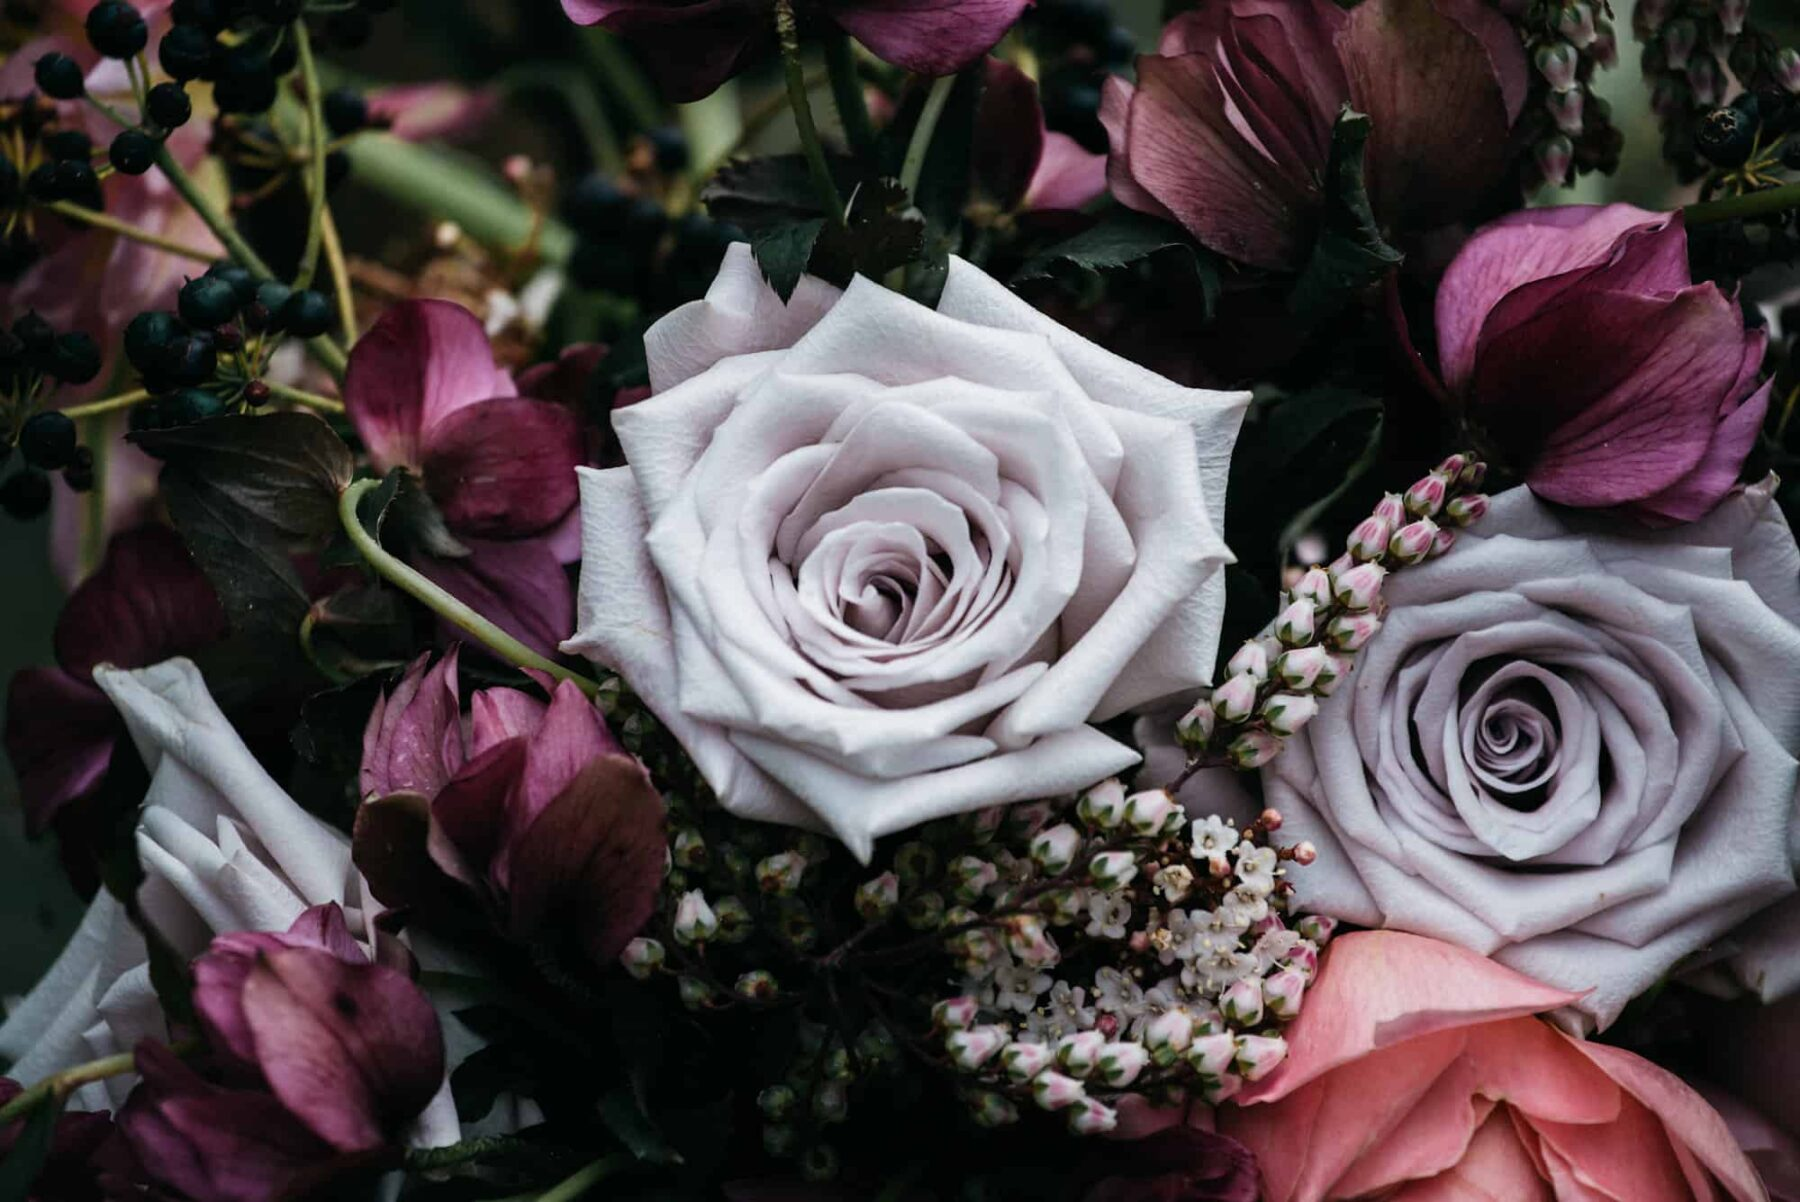 Textural bouquet in blush and burgundy hues